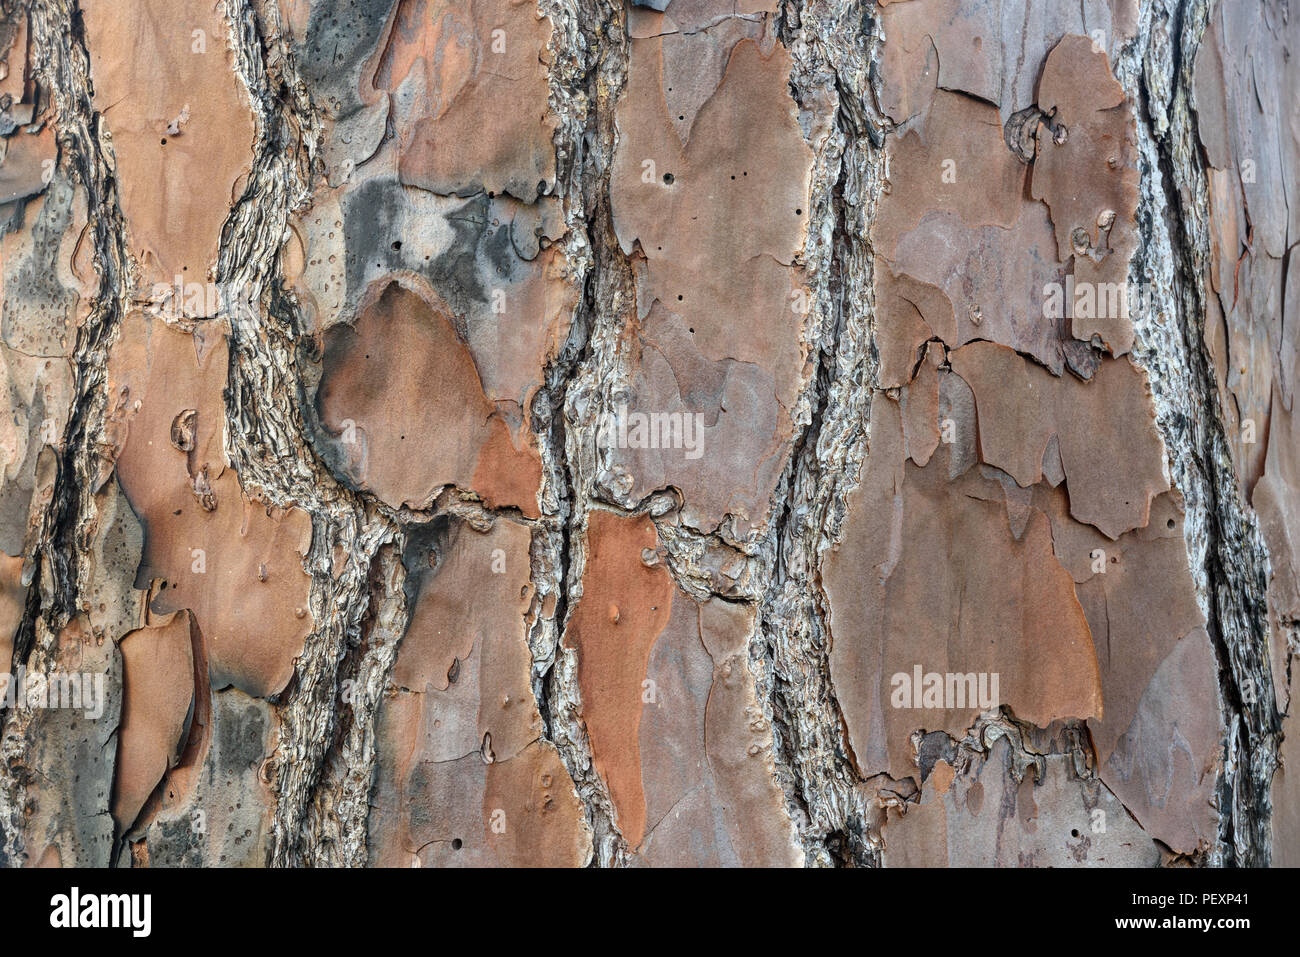 Longleaf pine (Pinus palustris) Tree bark, St. Marks NWR, Florida, USA - Stock Image